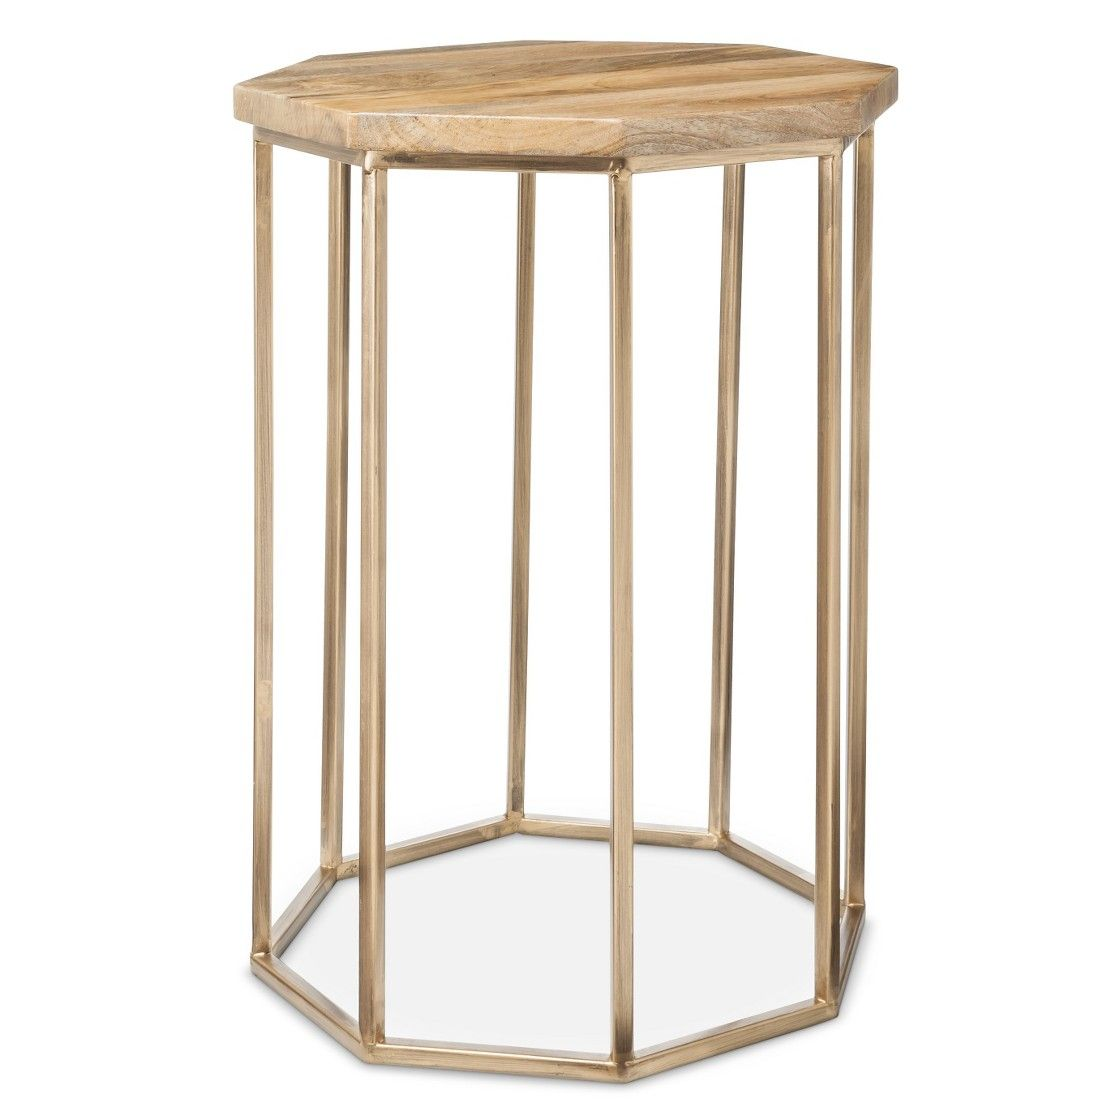 target threshold accent table tops marble top caged home design living wood high black counter height reclaimed matching bedside tables and chest drawers retro wooden chairs blue